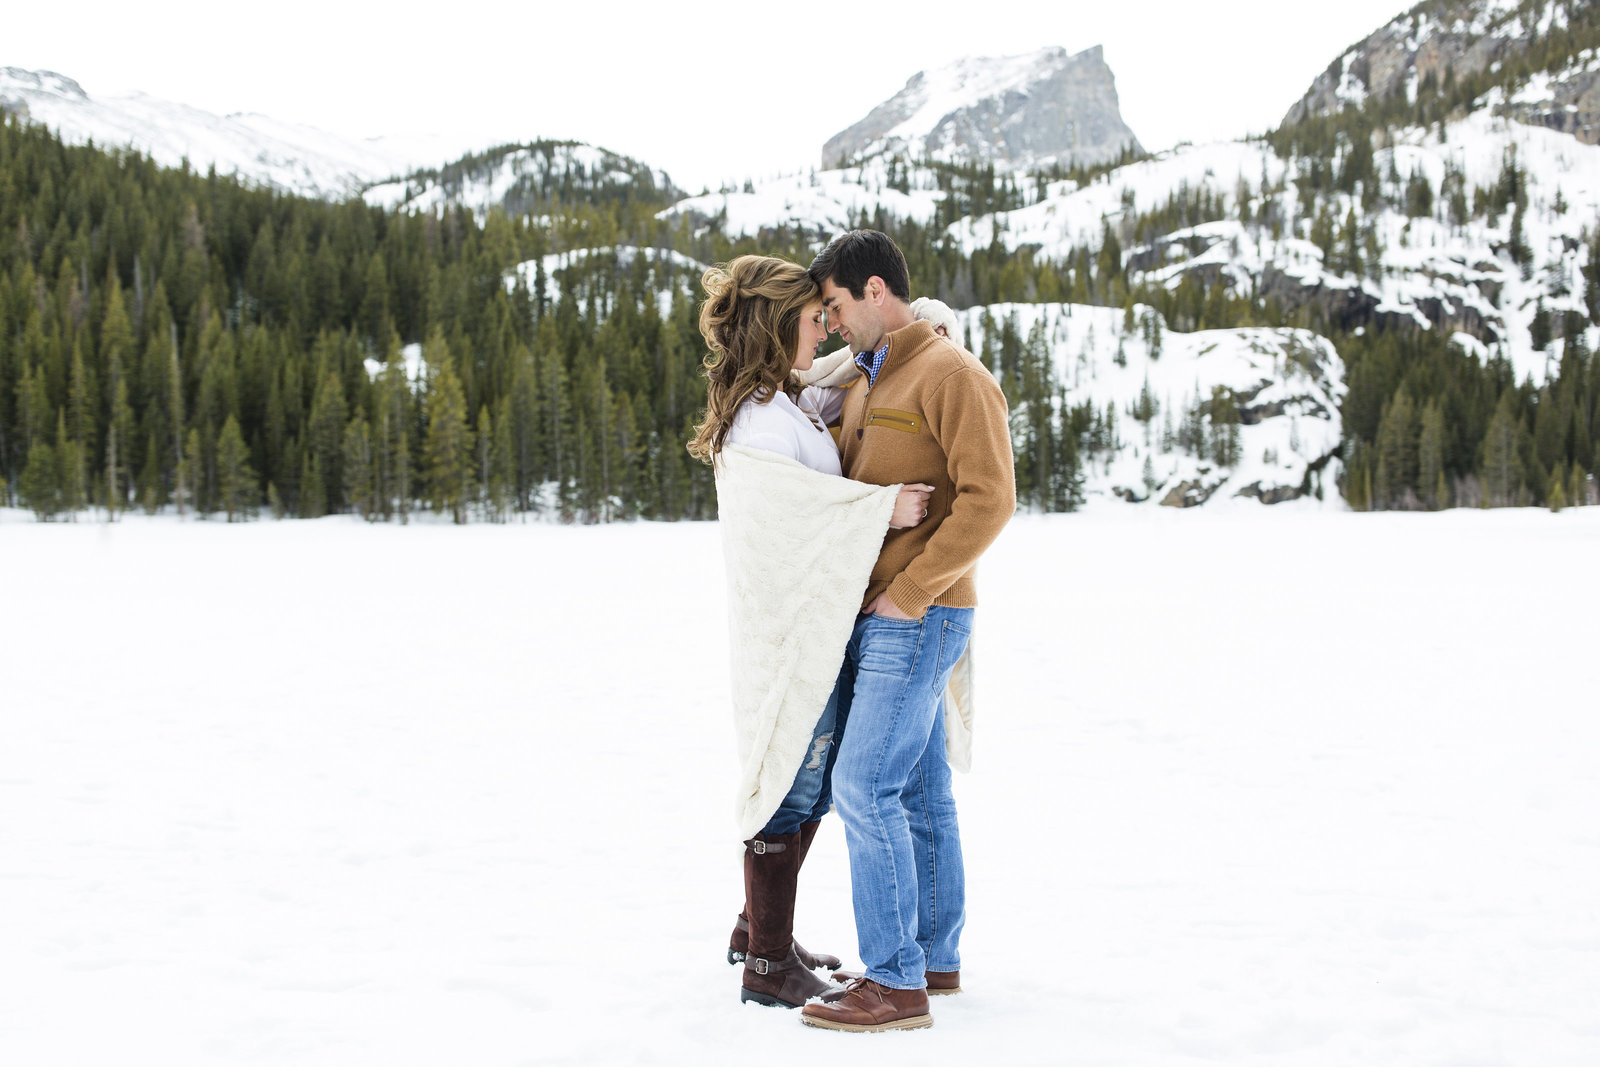 Jessi-And-Zach-Photography-Colorado-Wedding-Photographer-Nevada-Wedding-Photographer-Nevada-Engagement-Photographer_01